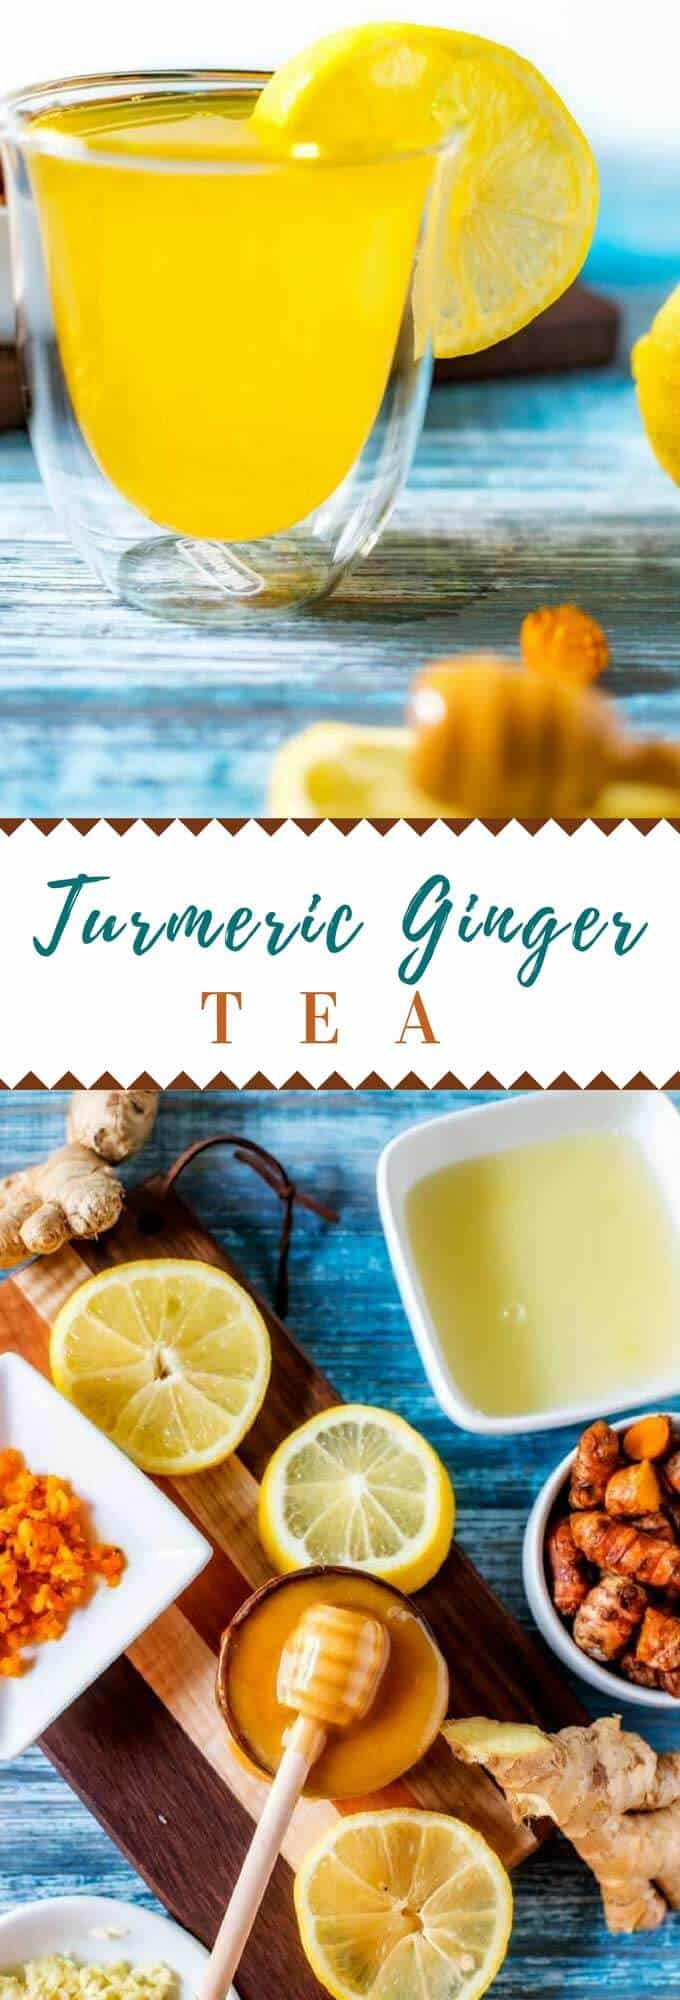 This Turmeric Ginger Tea is the perfect turmeric tea recipe to help combat colds, inflammation and support detox!  #turmeric #cold #flu #Inflammation